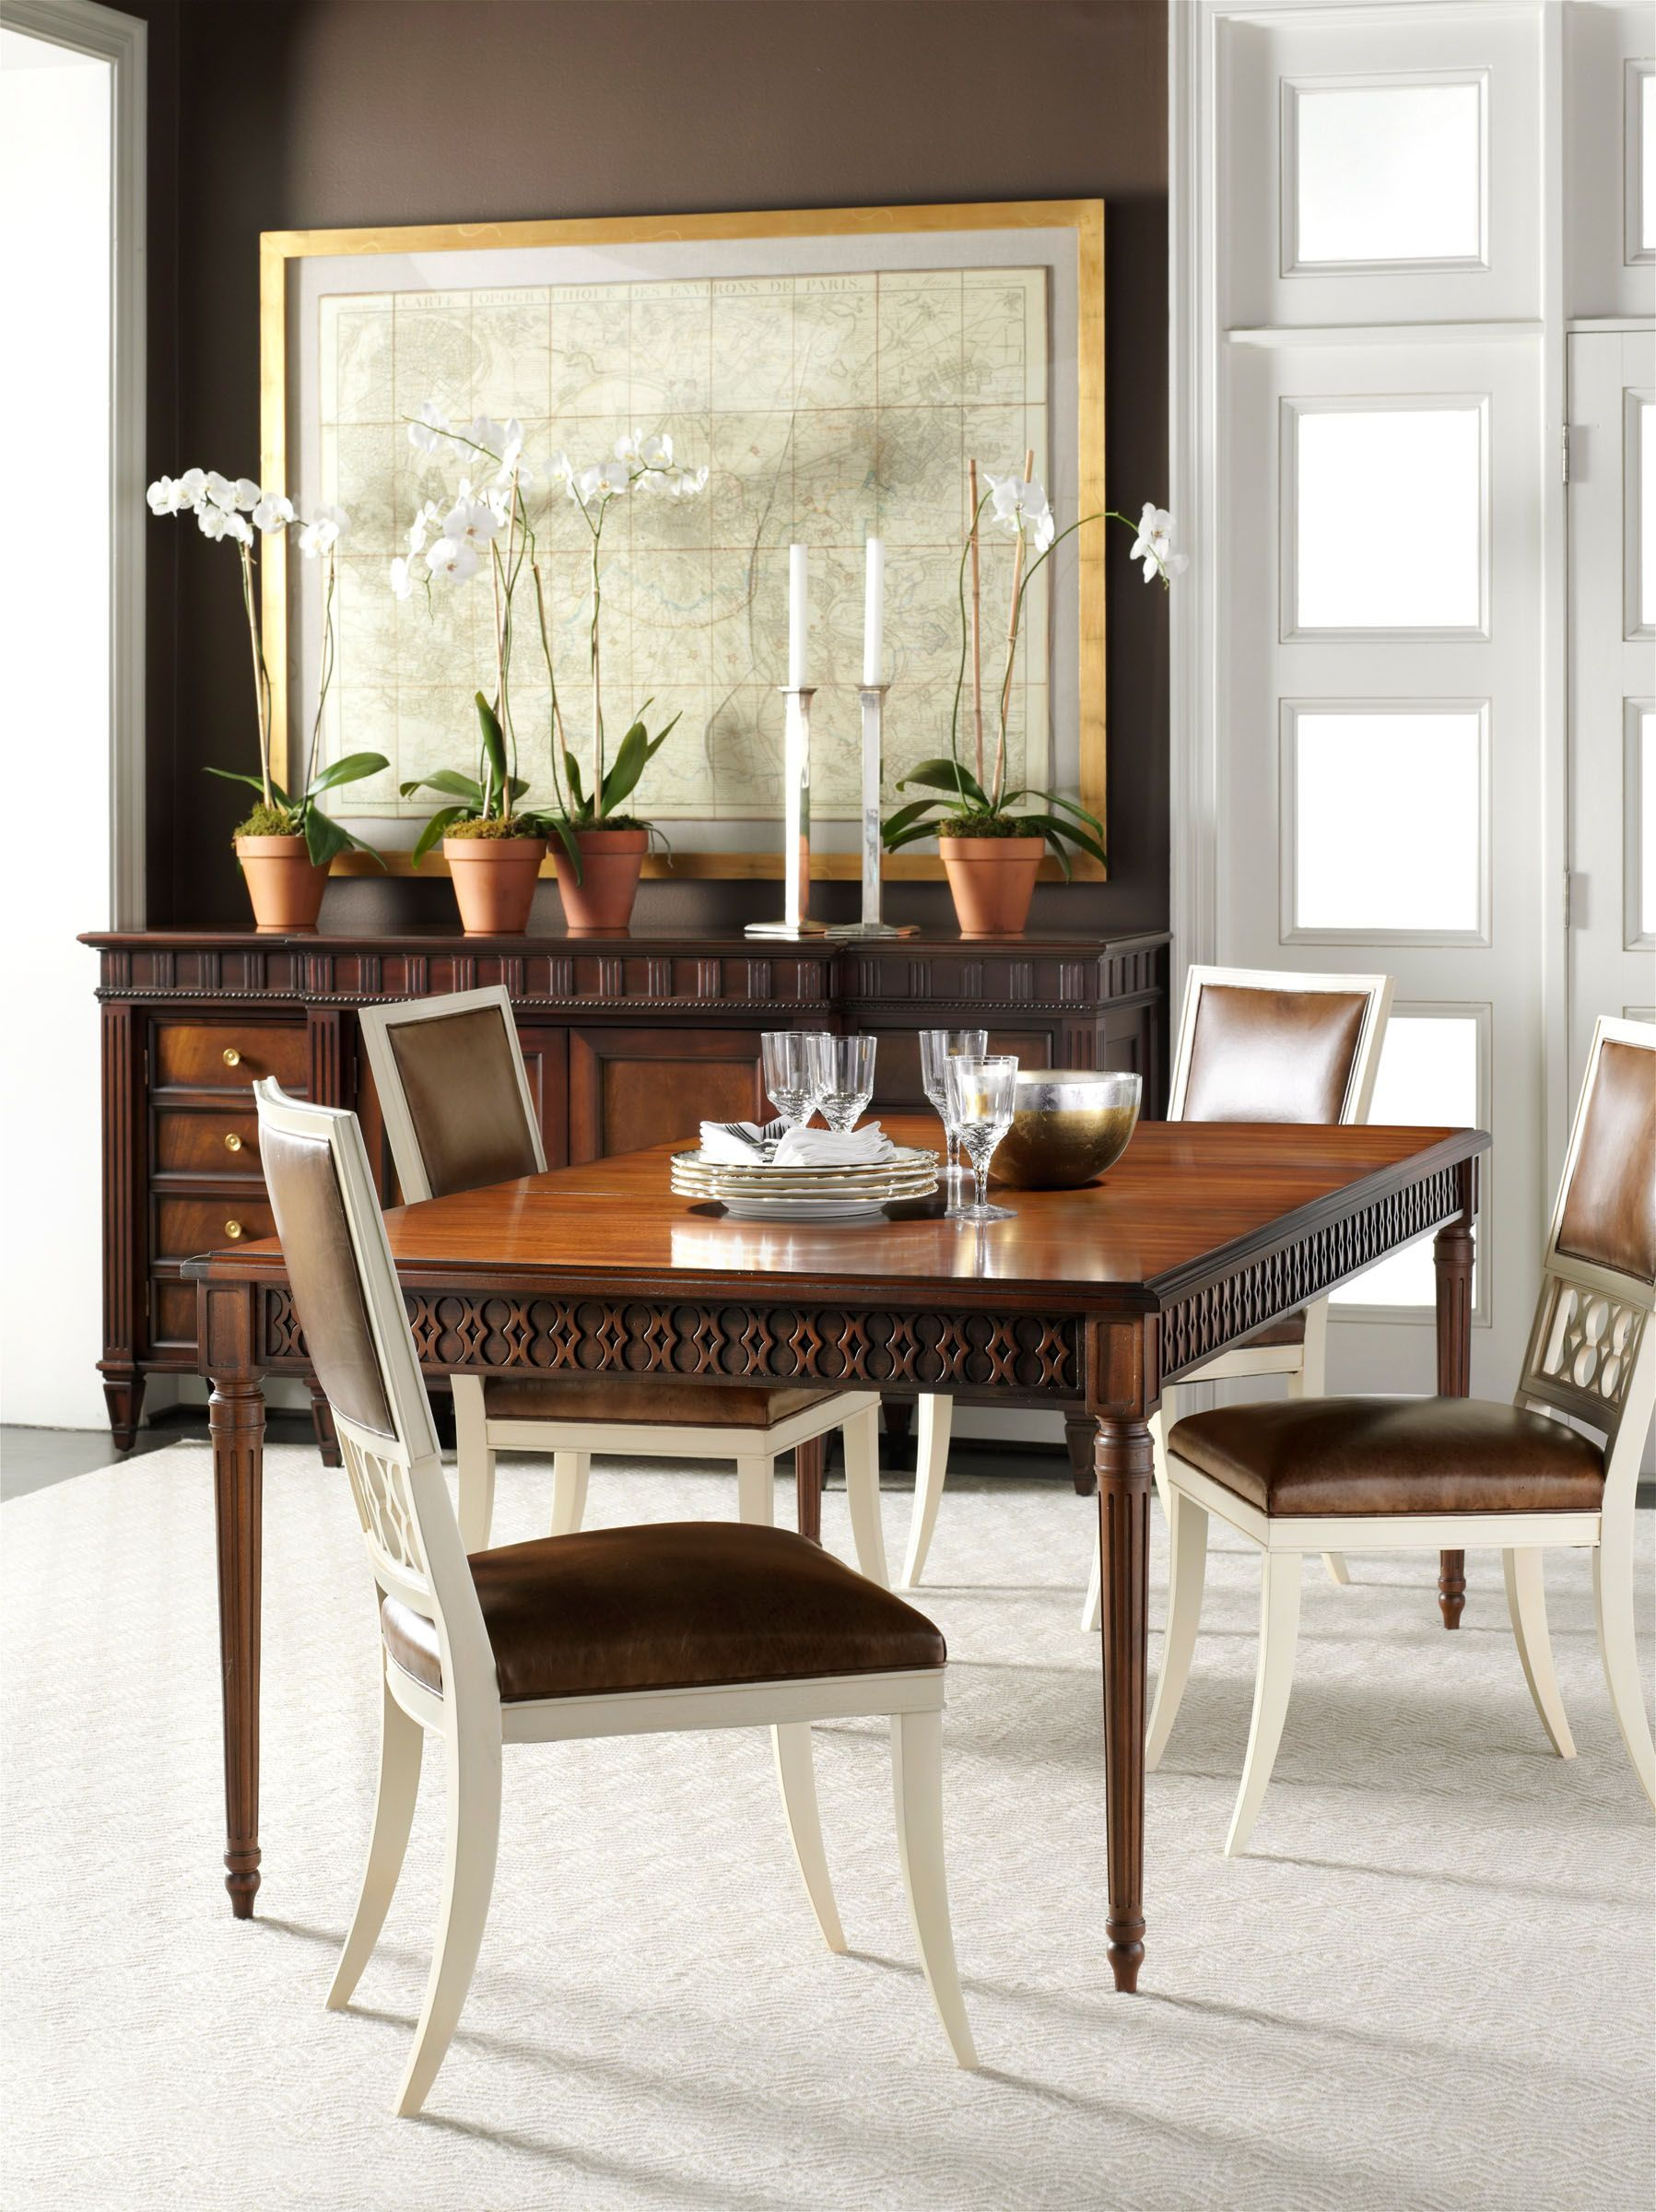 Hickory Chair Classic dining room, Dining room design